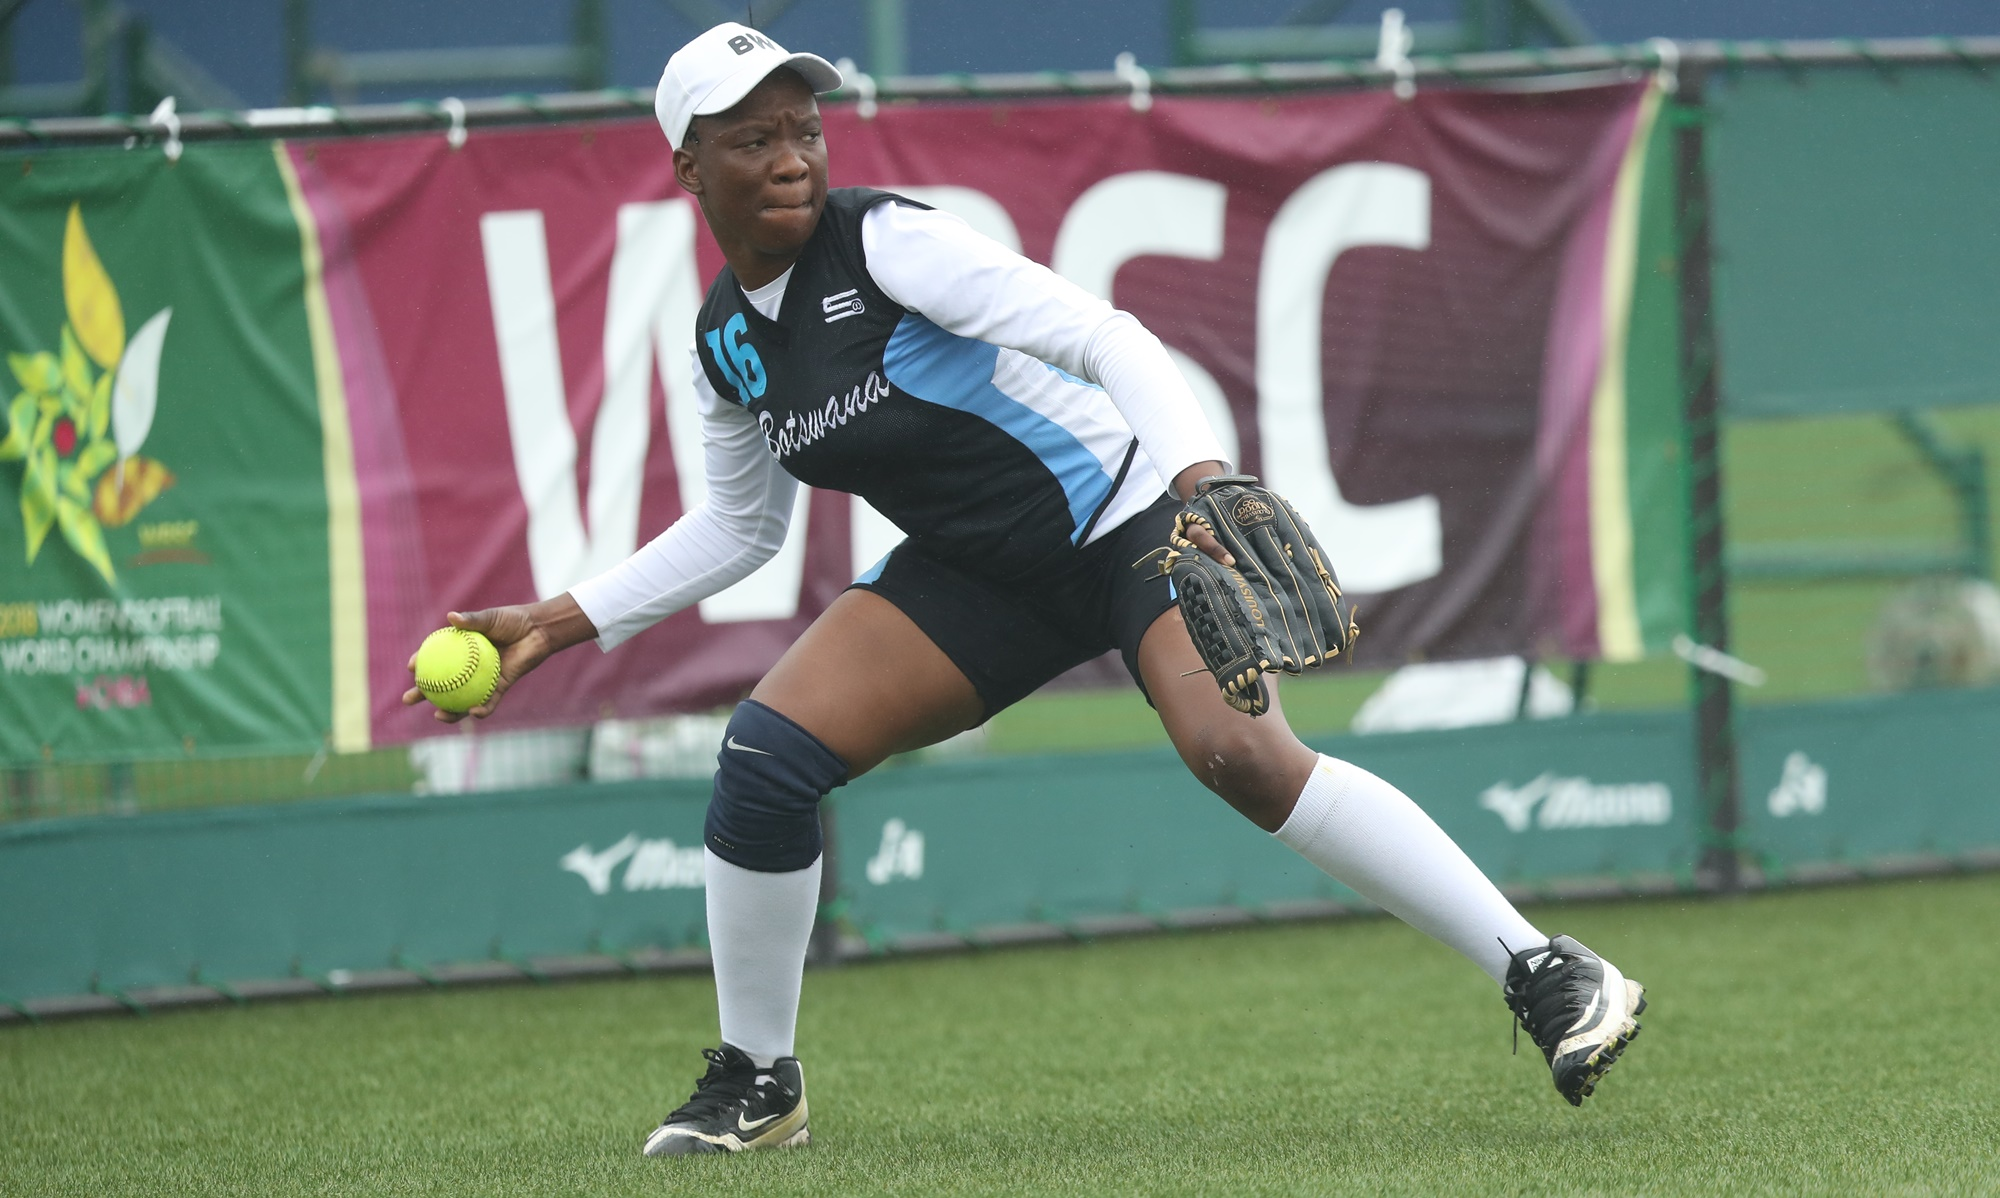 Othusitse Molatheng fielding for Botswana